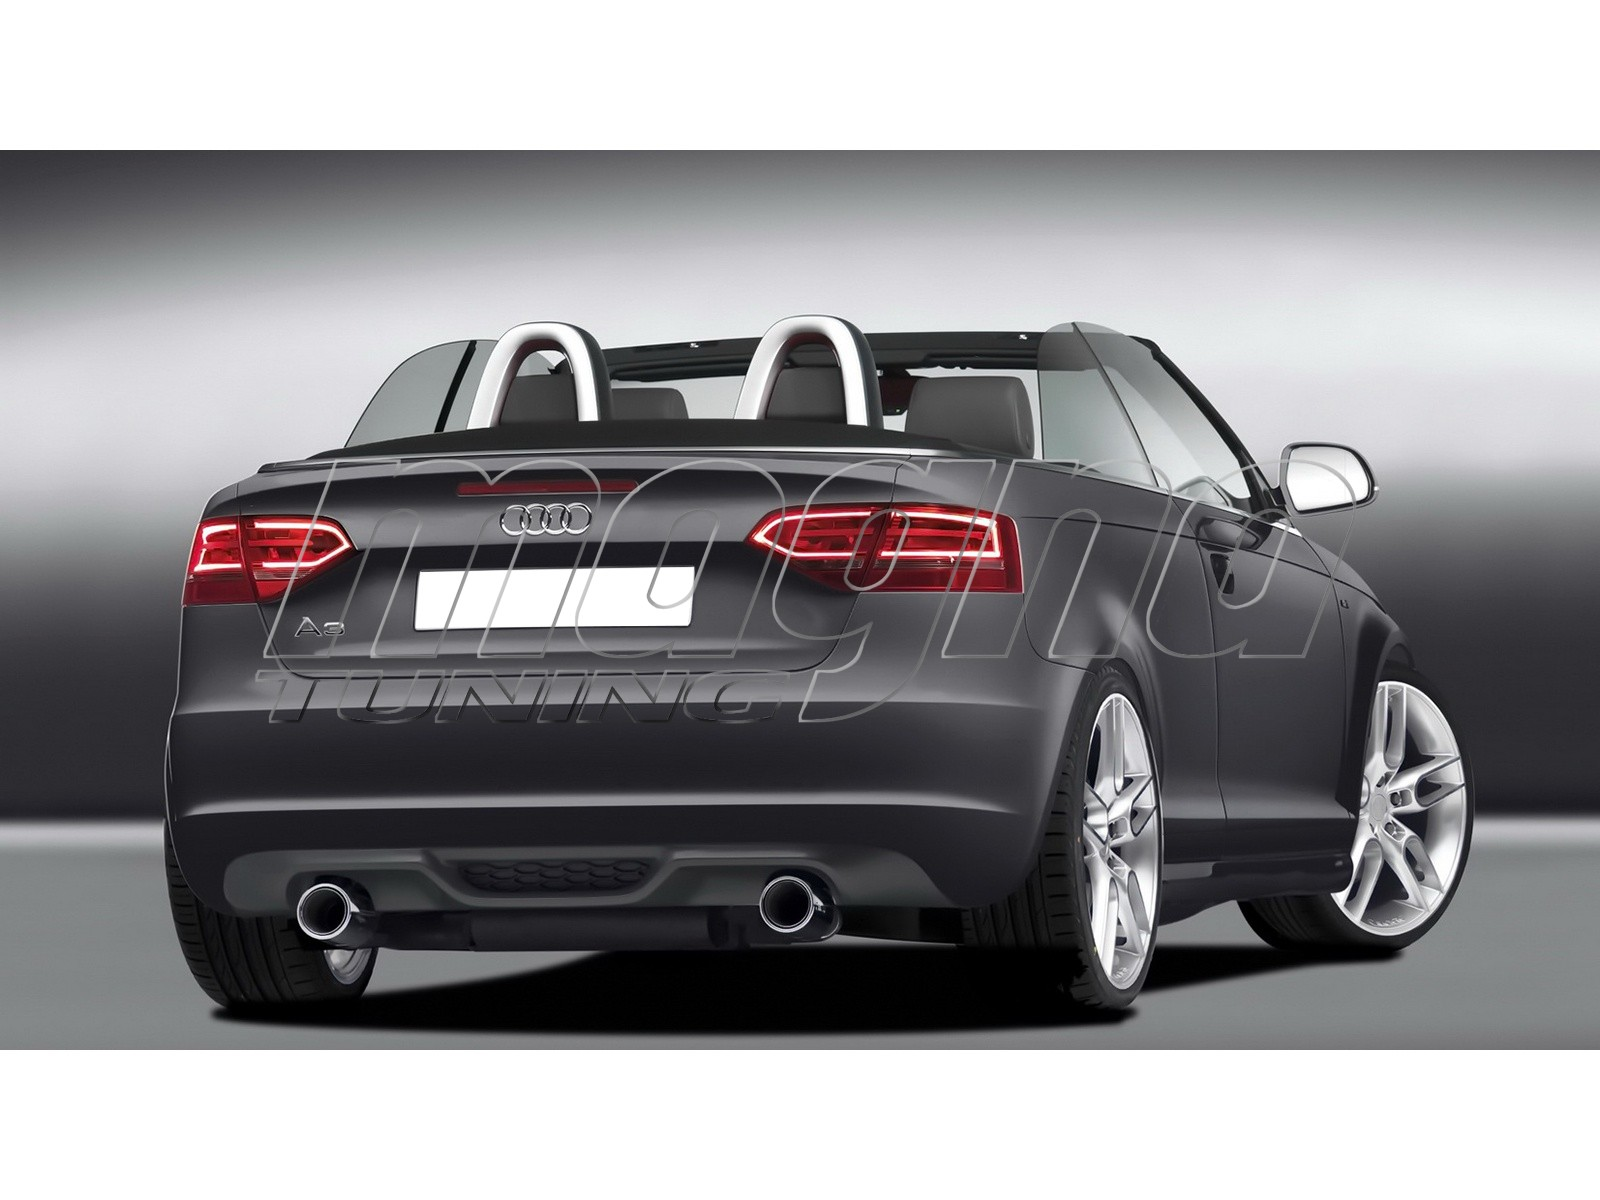 audi a3 8p facelift cabrio c2 body kit. Black Bedroom Furniture Sets. Home Design Ideas